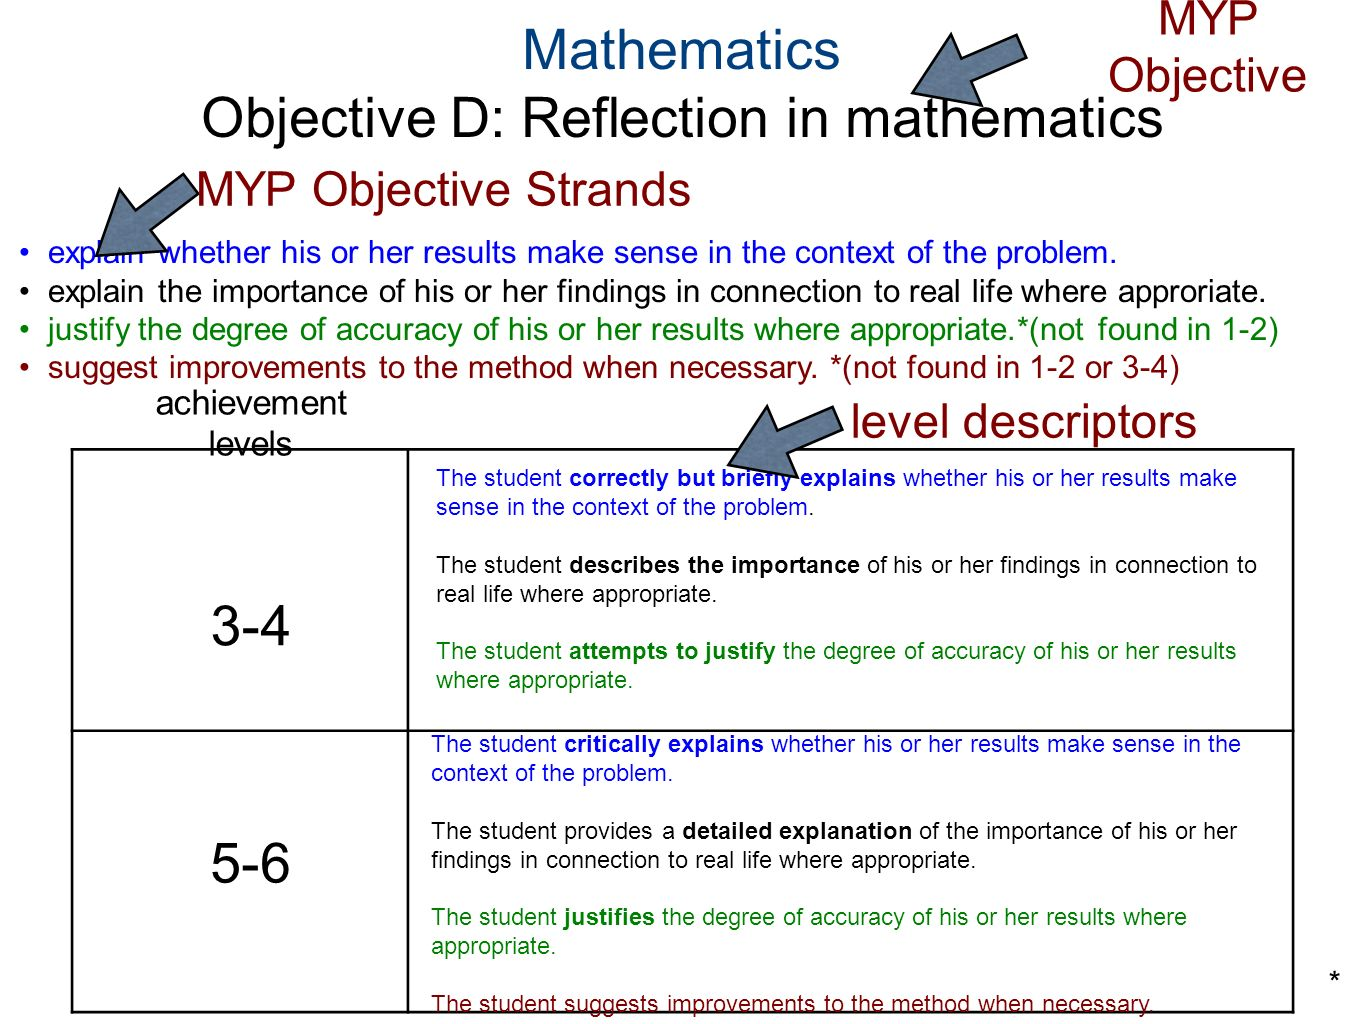 Objective D: Reflection in mathematics